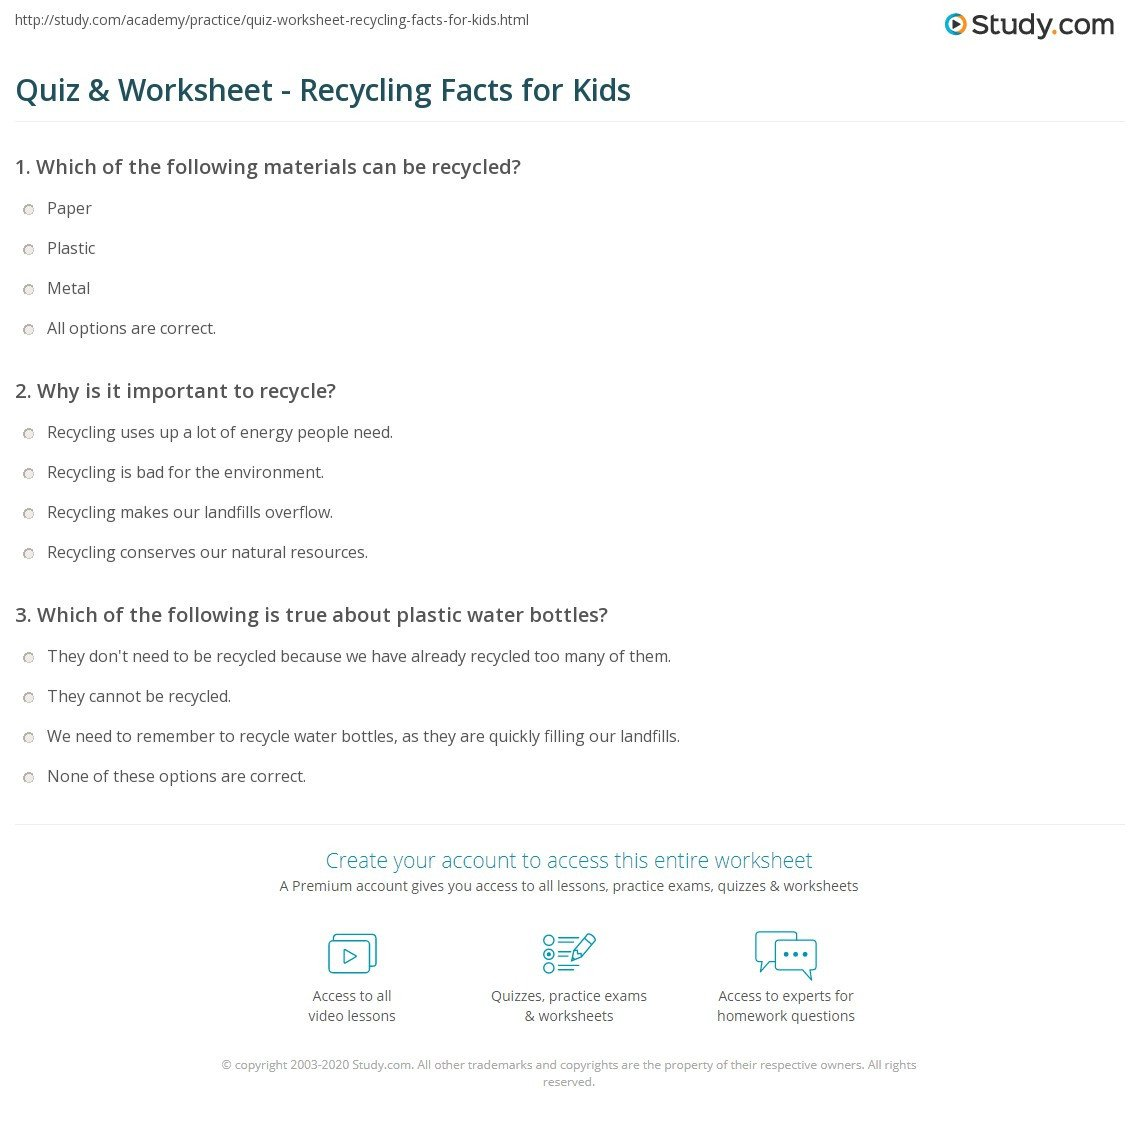 quiz worksheet recycling facts for kids